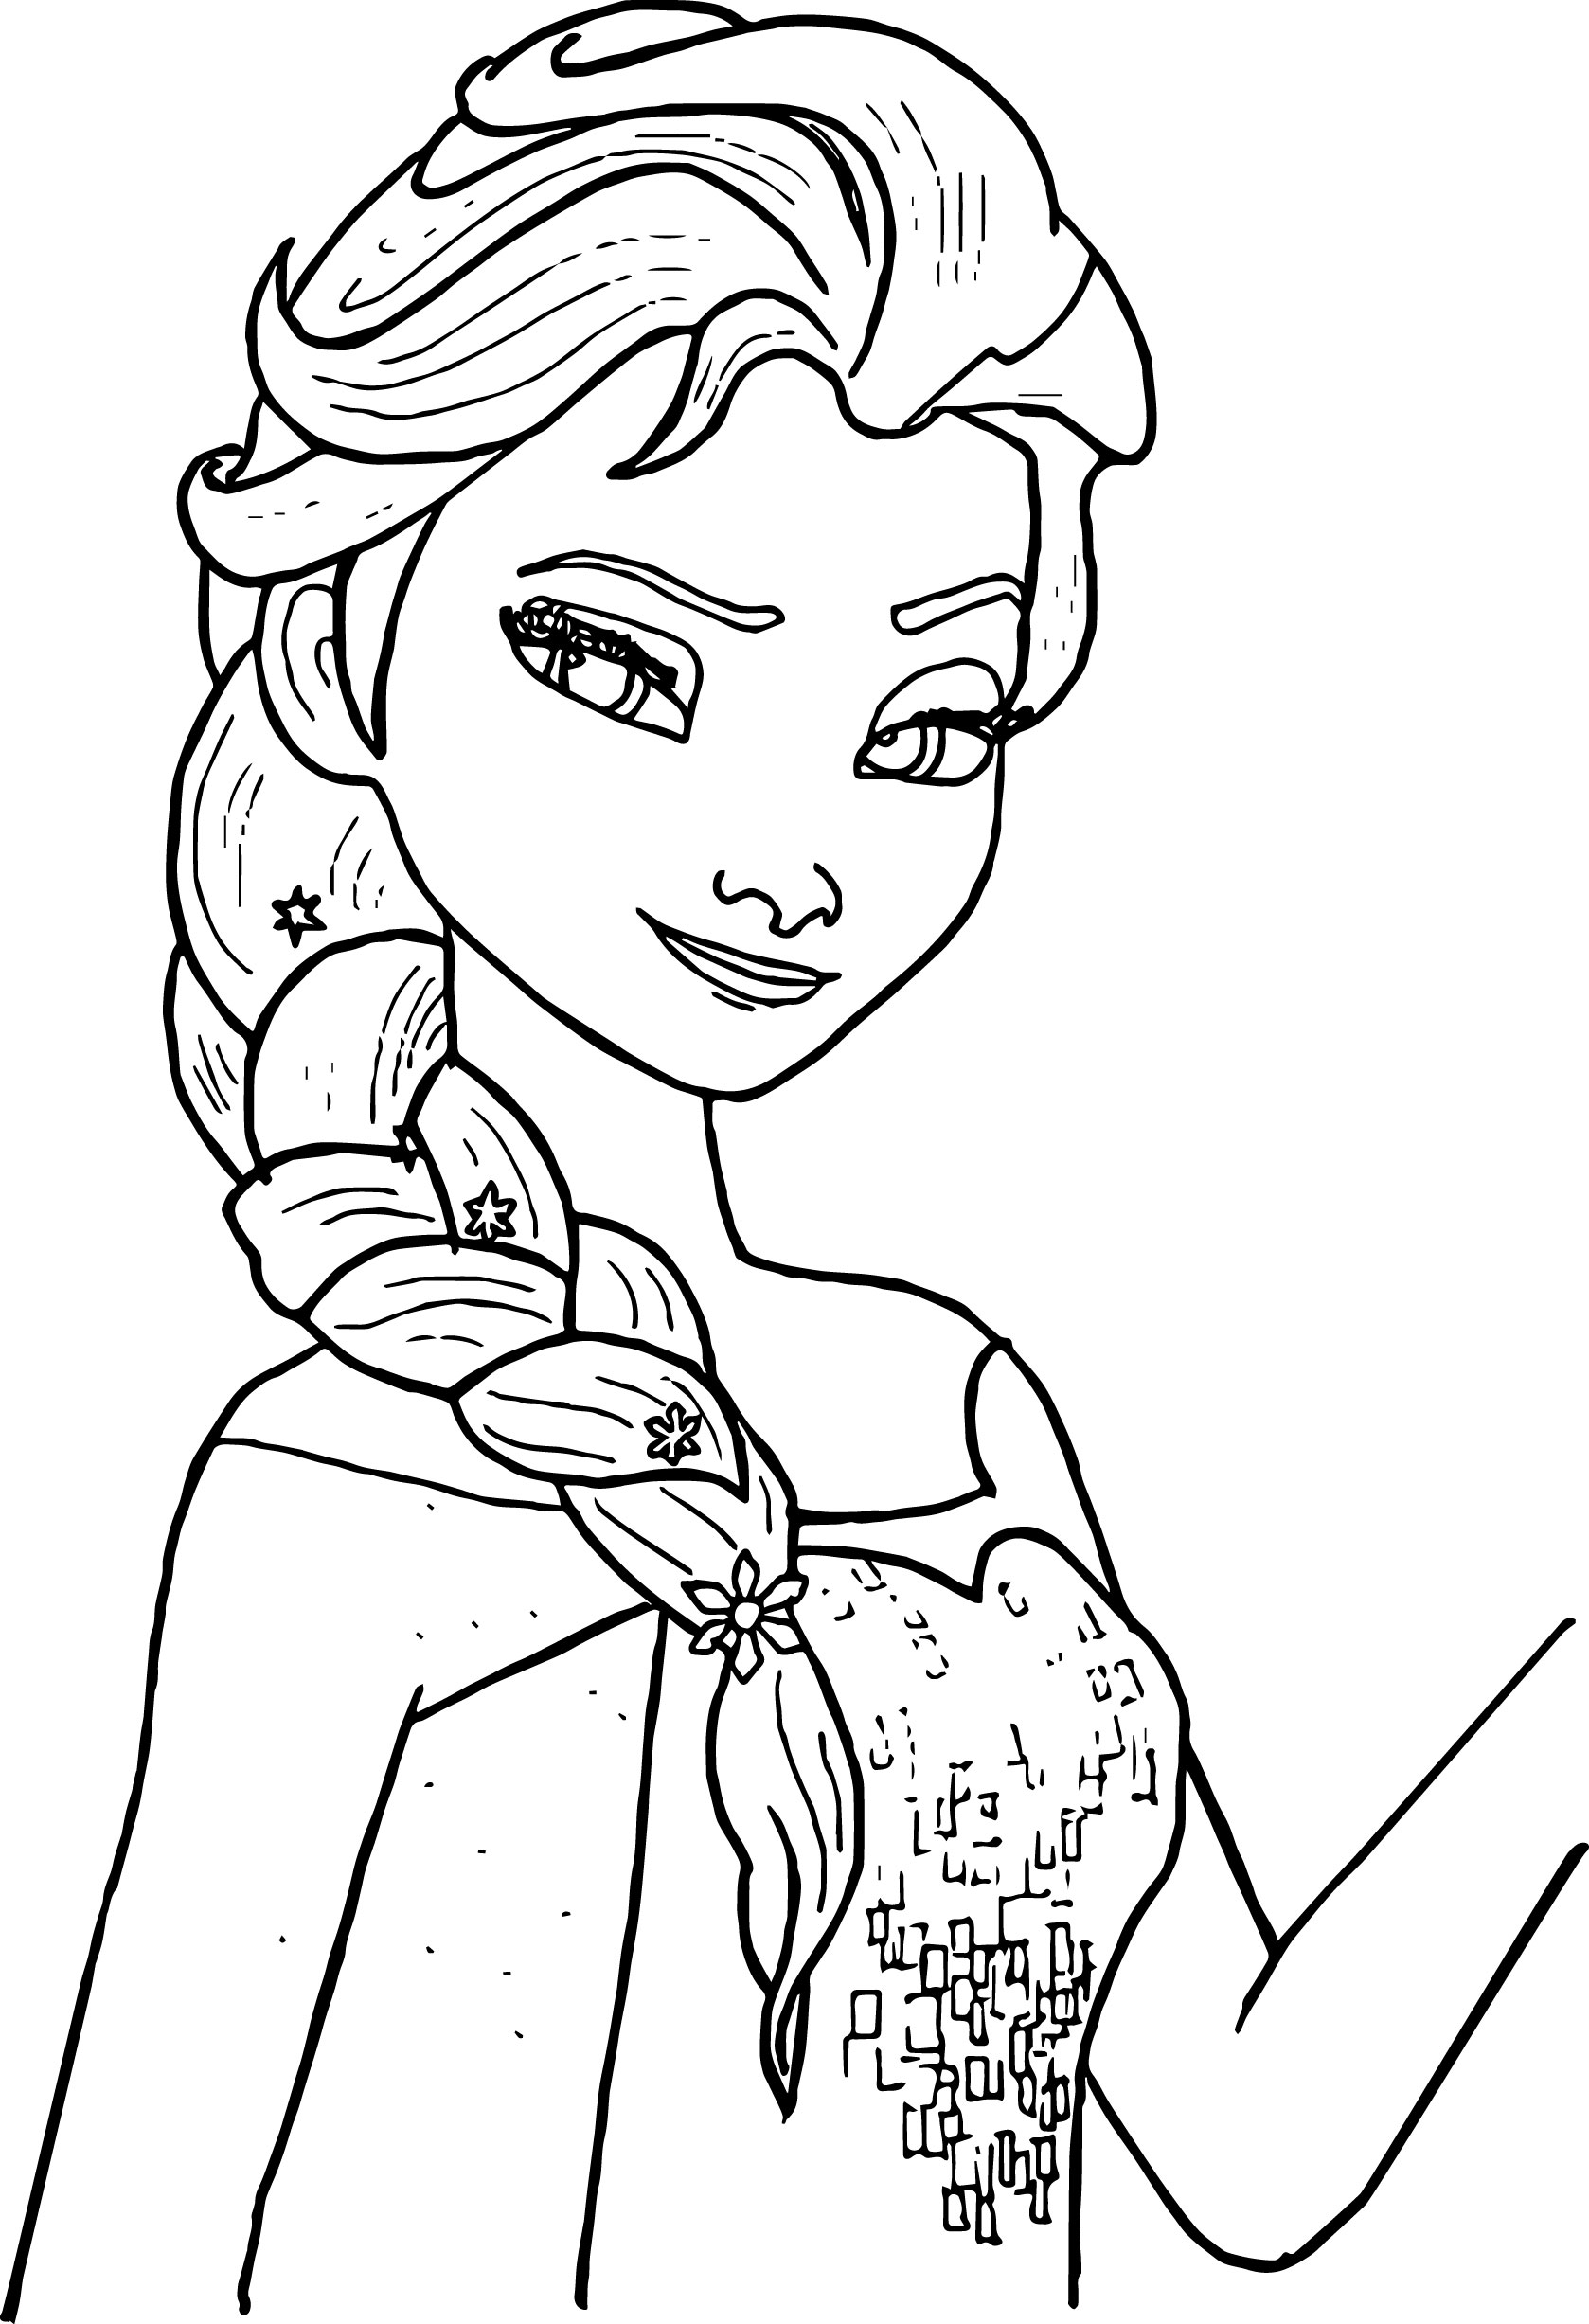 kids coloring pages printable free printable digimon coloring pages for kids pages printable kids coloring